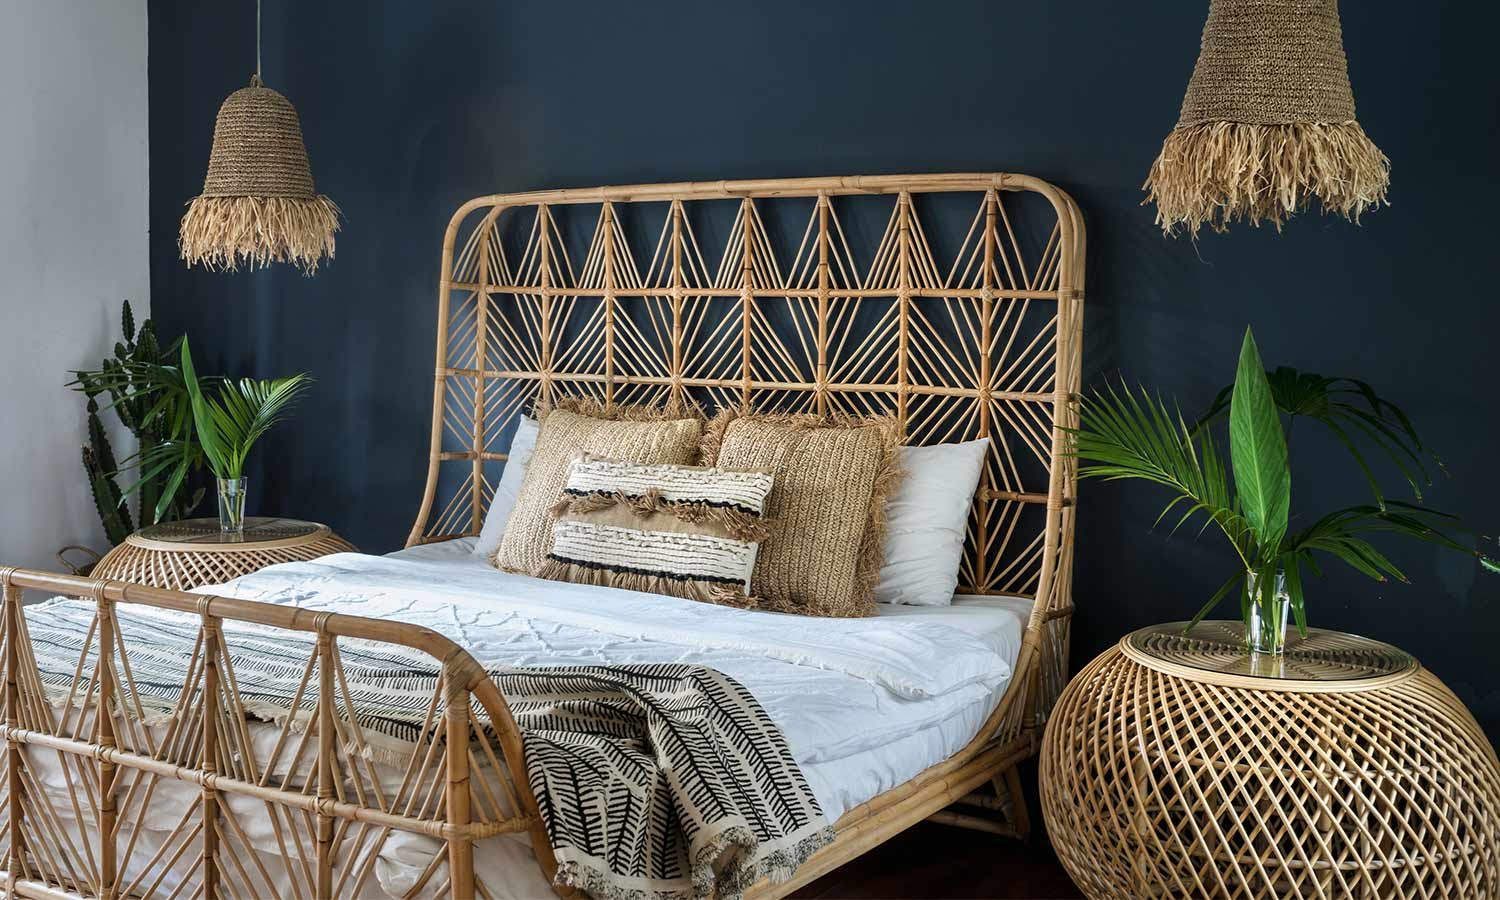 A light-colored bedframe with woven wicker in the headboard and footer.